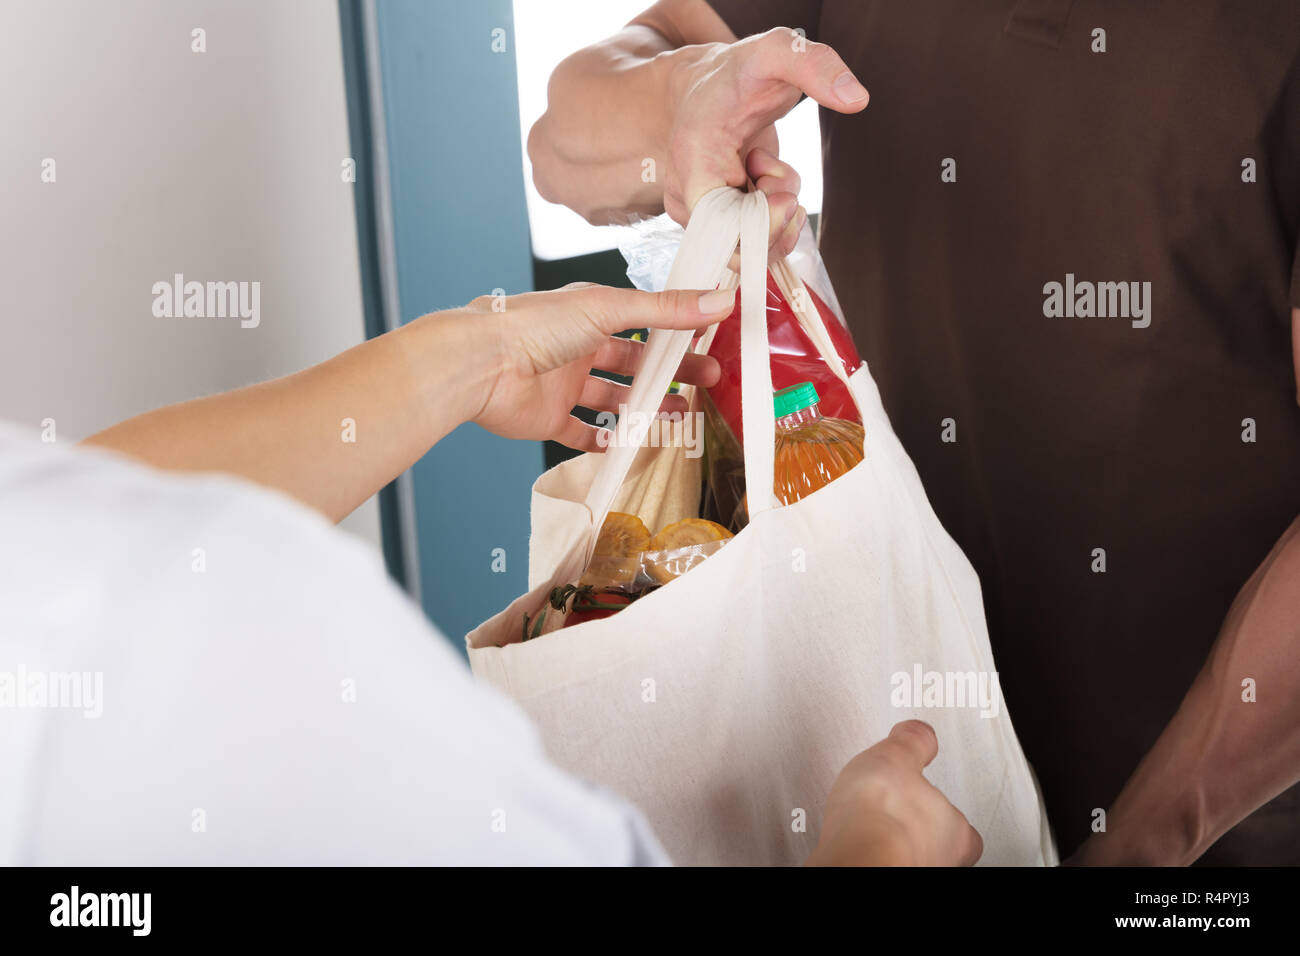 Man Giving Bag Of Grocery To Woman - Stock Image